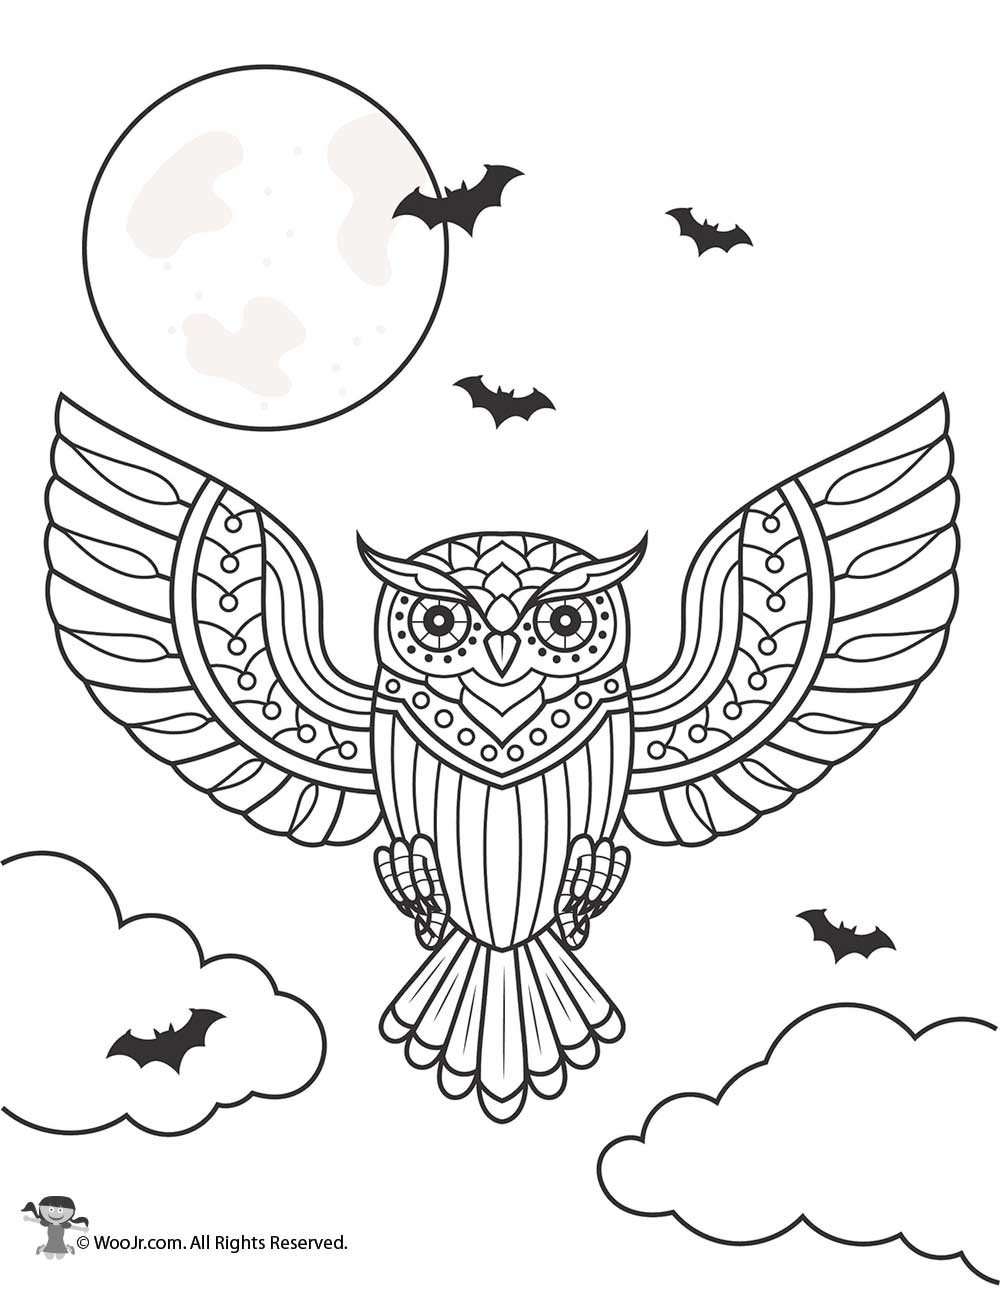 Day Of The Dead Owl Coloring Page Woo Jr Kids Activities